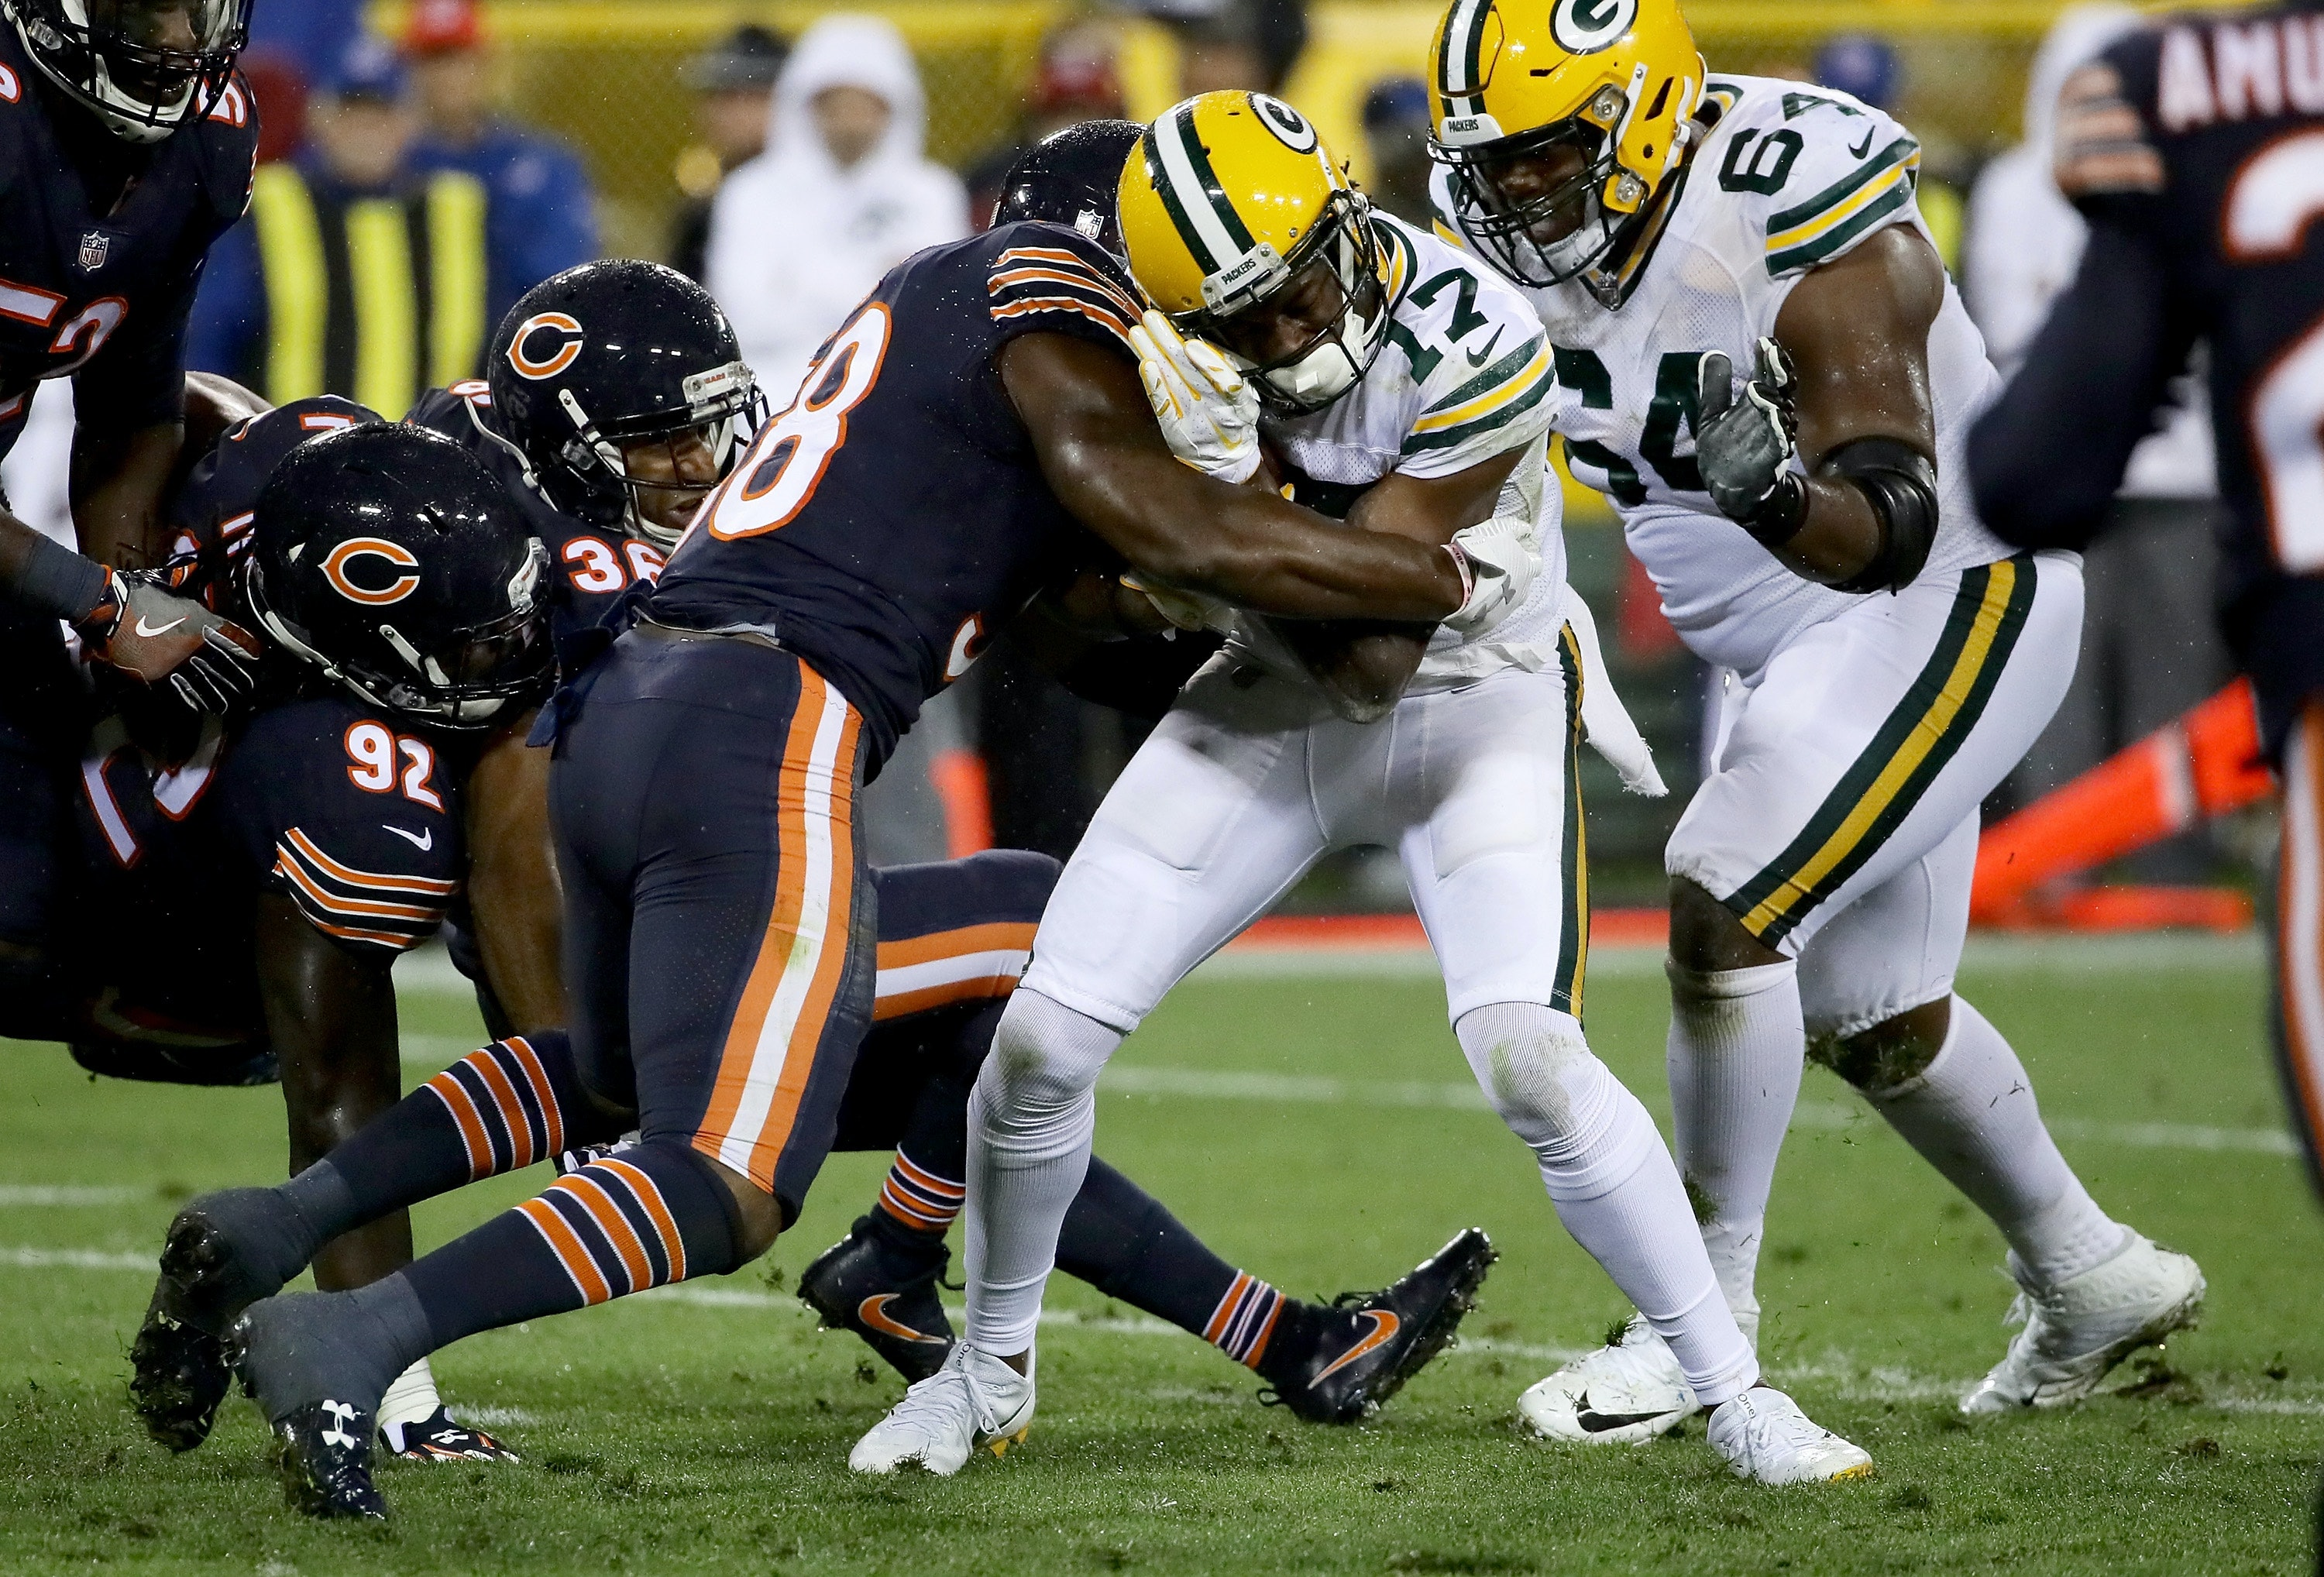 Davante Adams (concussion) may be ready for Packers Week 5